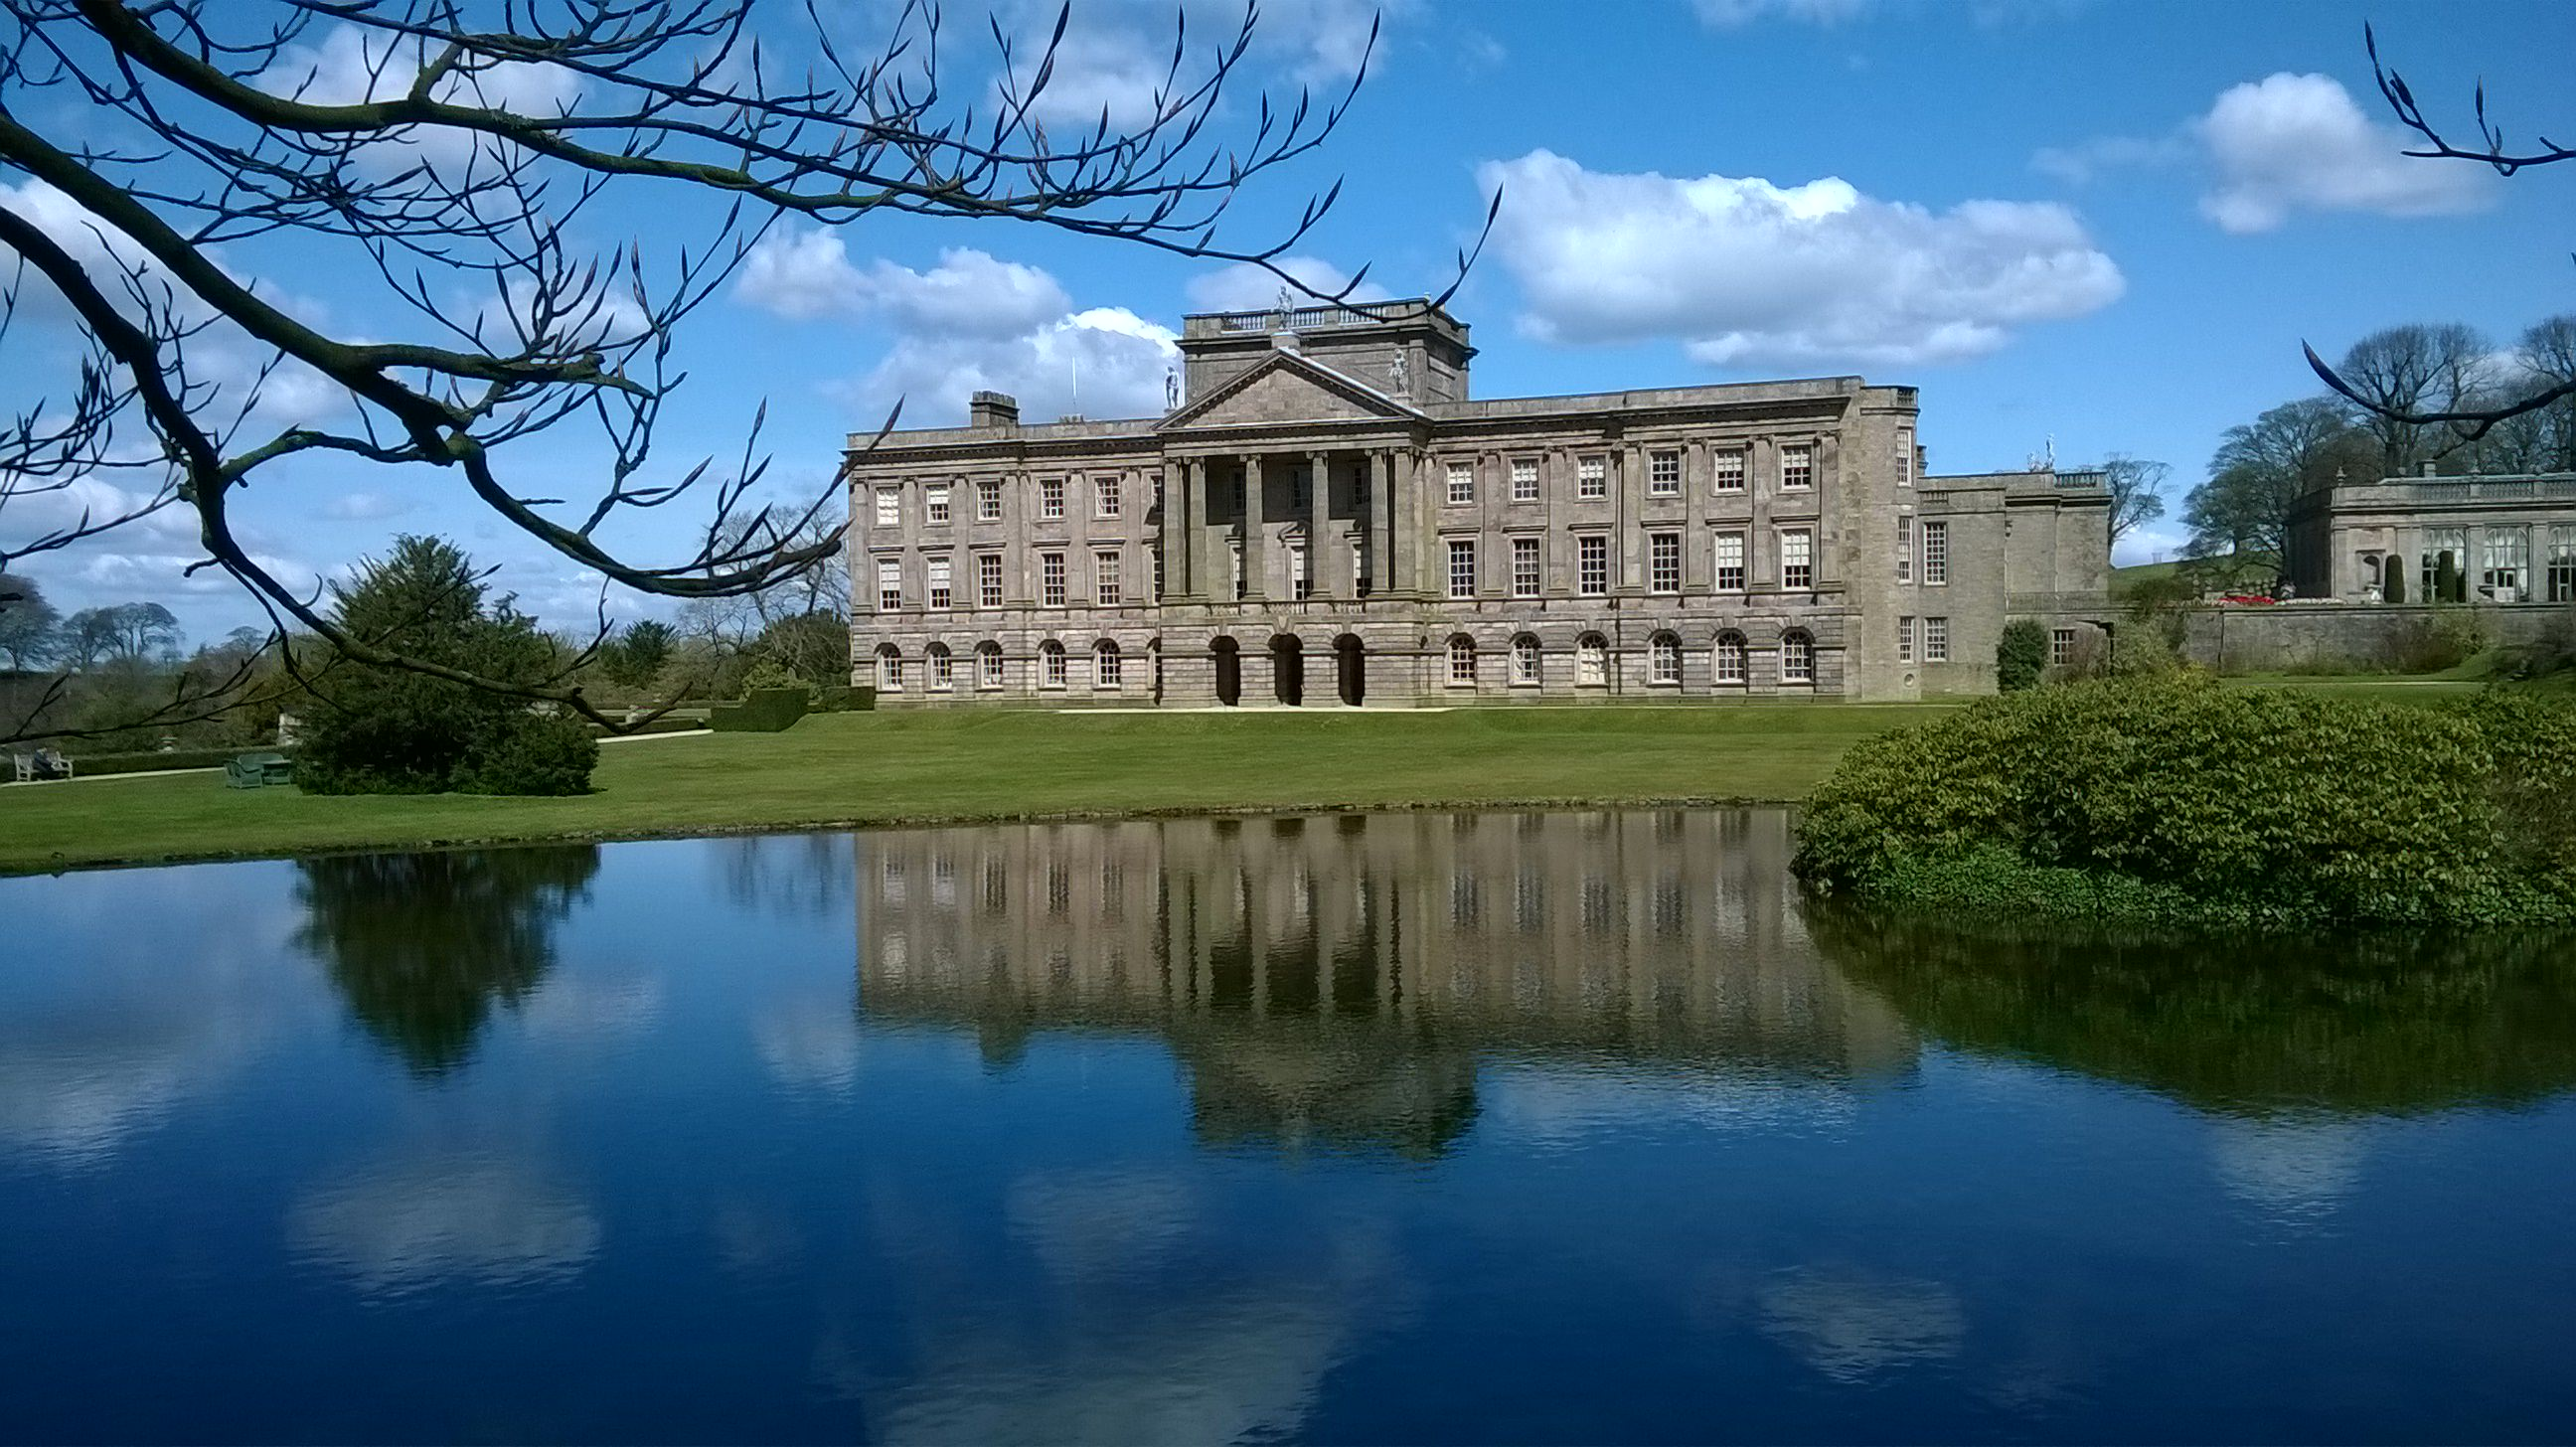 Photo of Lyme Hall from over the reflection lake